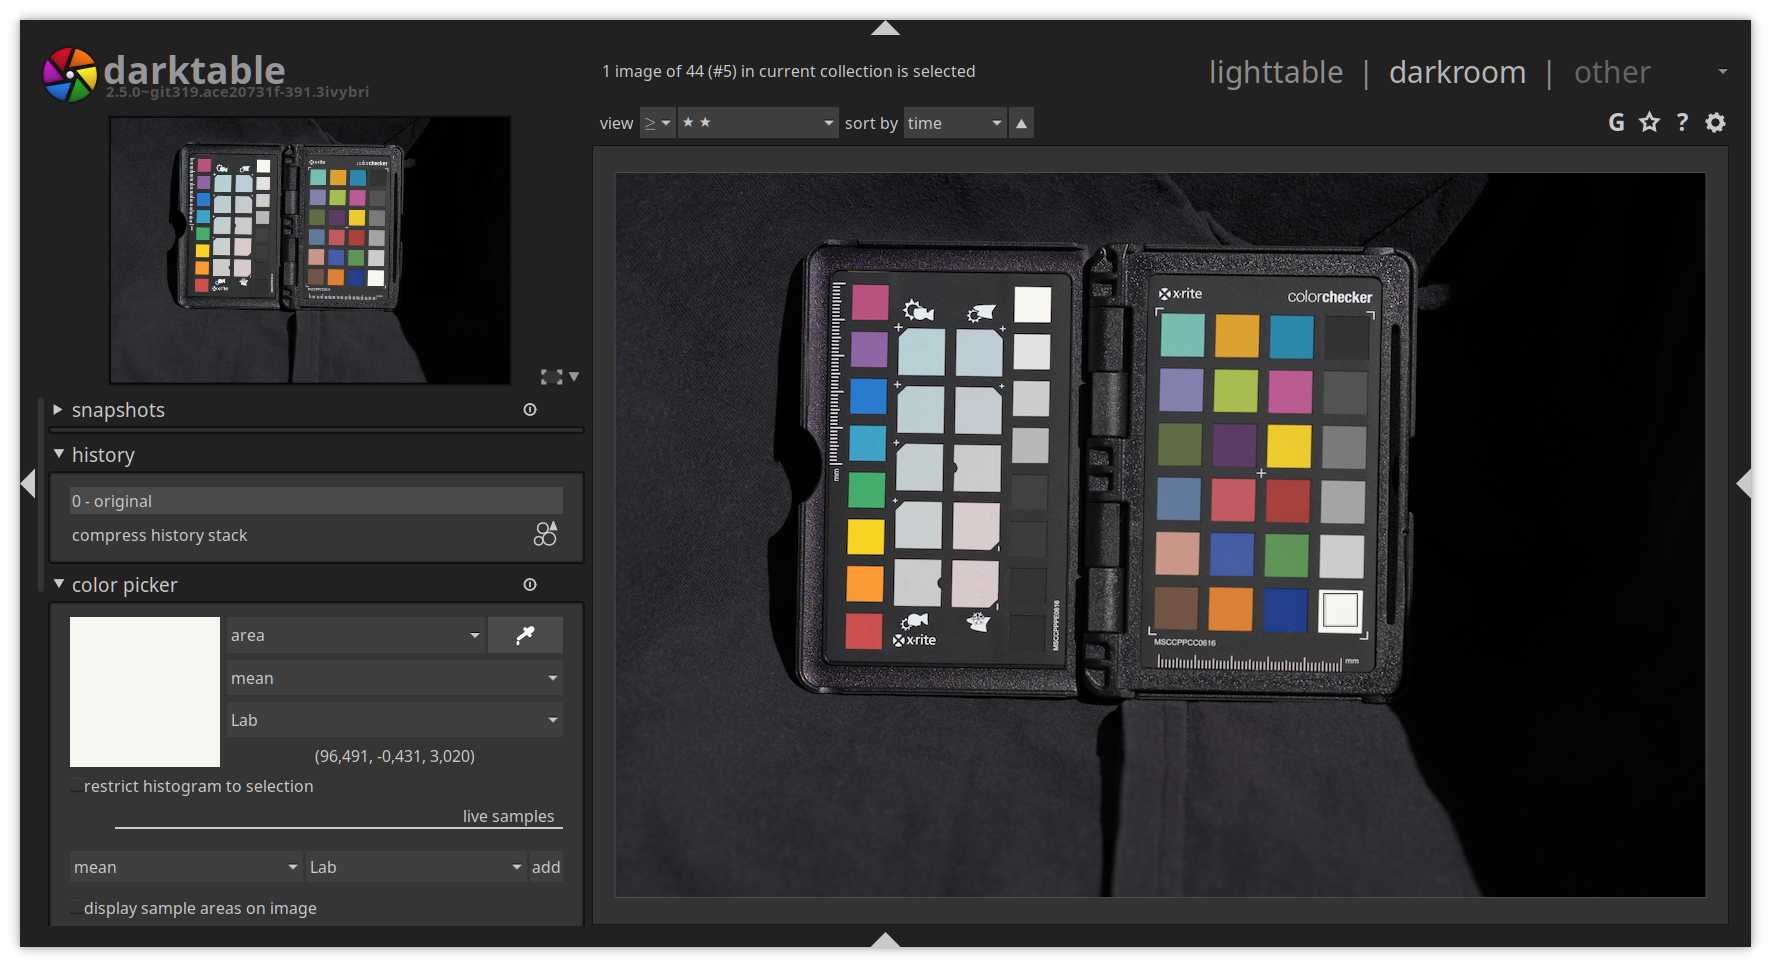 PIXLS US - Profiling a camera with darktable-chart